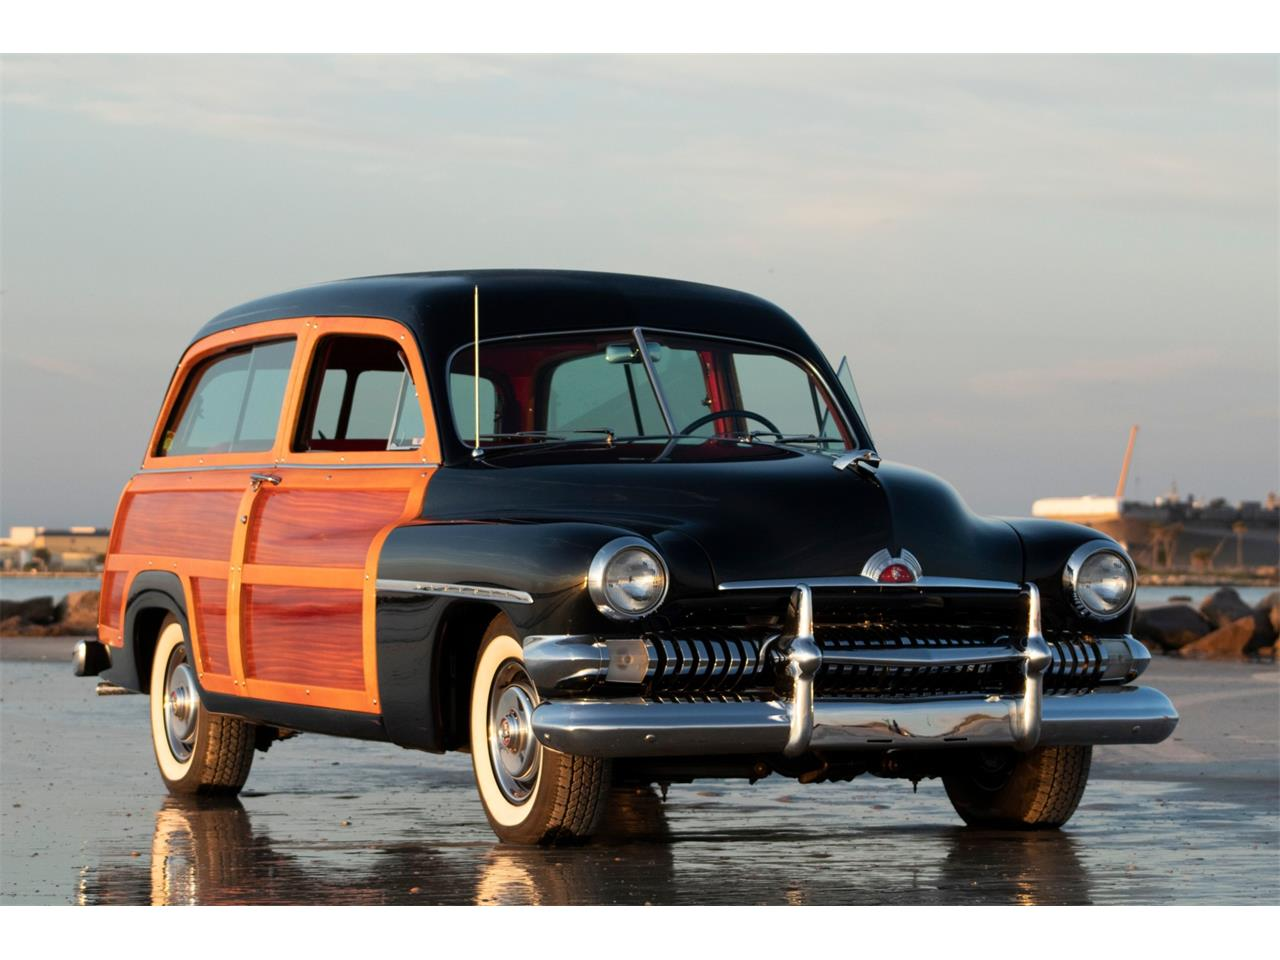 1951 Mercury Woody Wagon for sale in Jacksonville, FL – photo 7